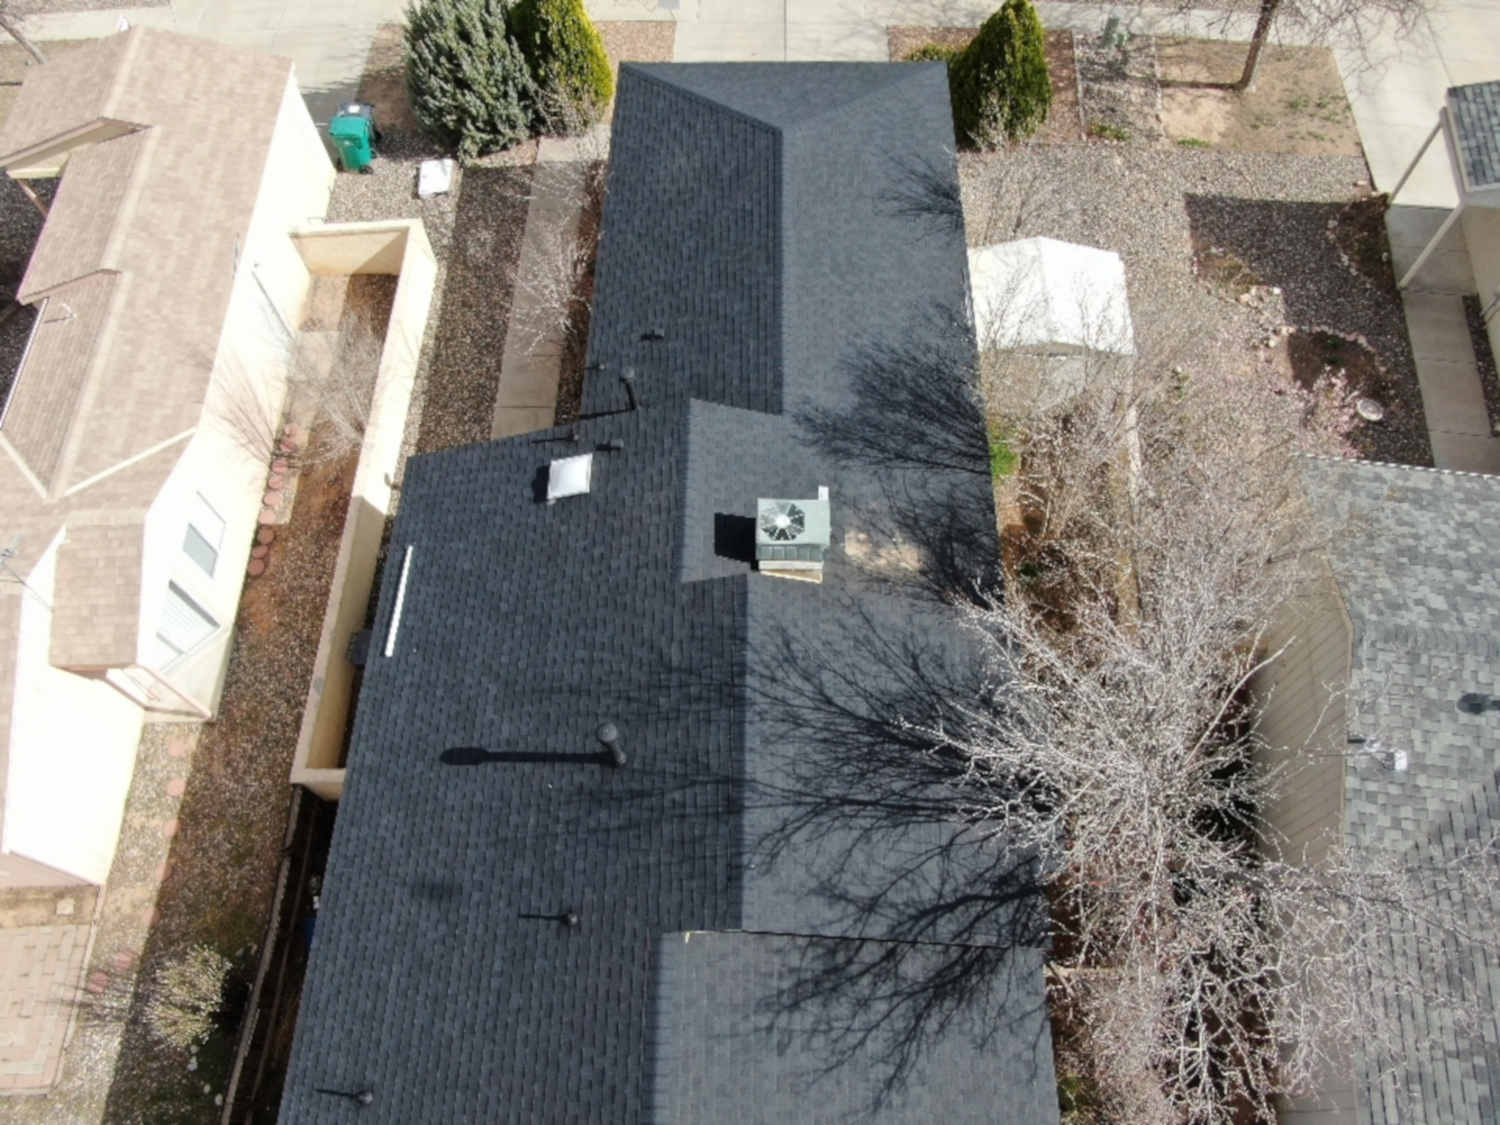 Asphalt Shingle Roofing Albuquerque NM 04a Finishing Touch Home Improvements 505-379-7705